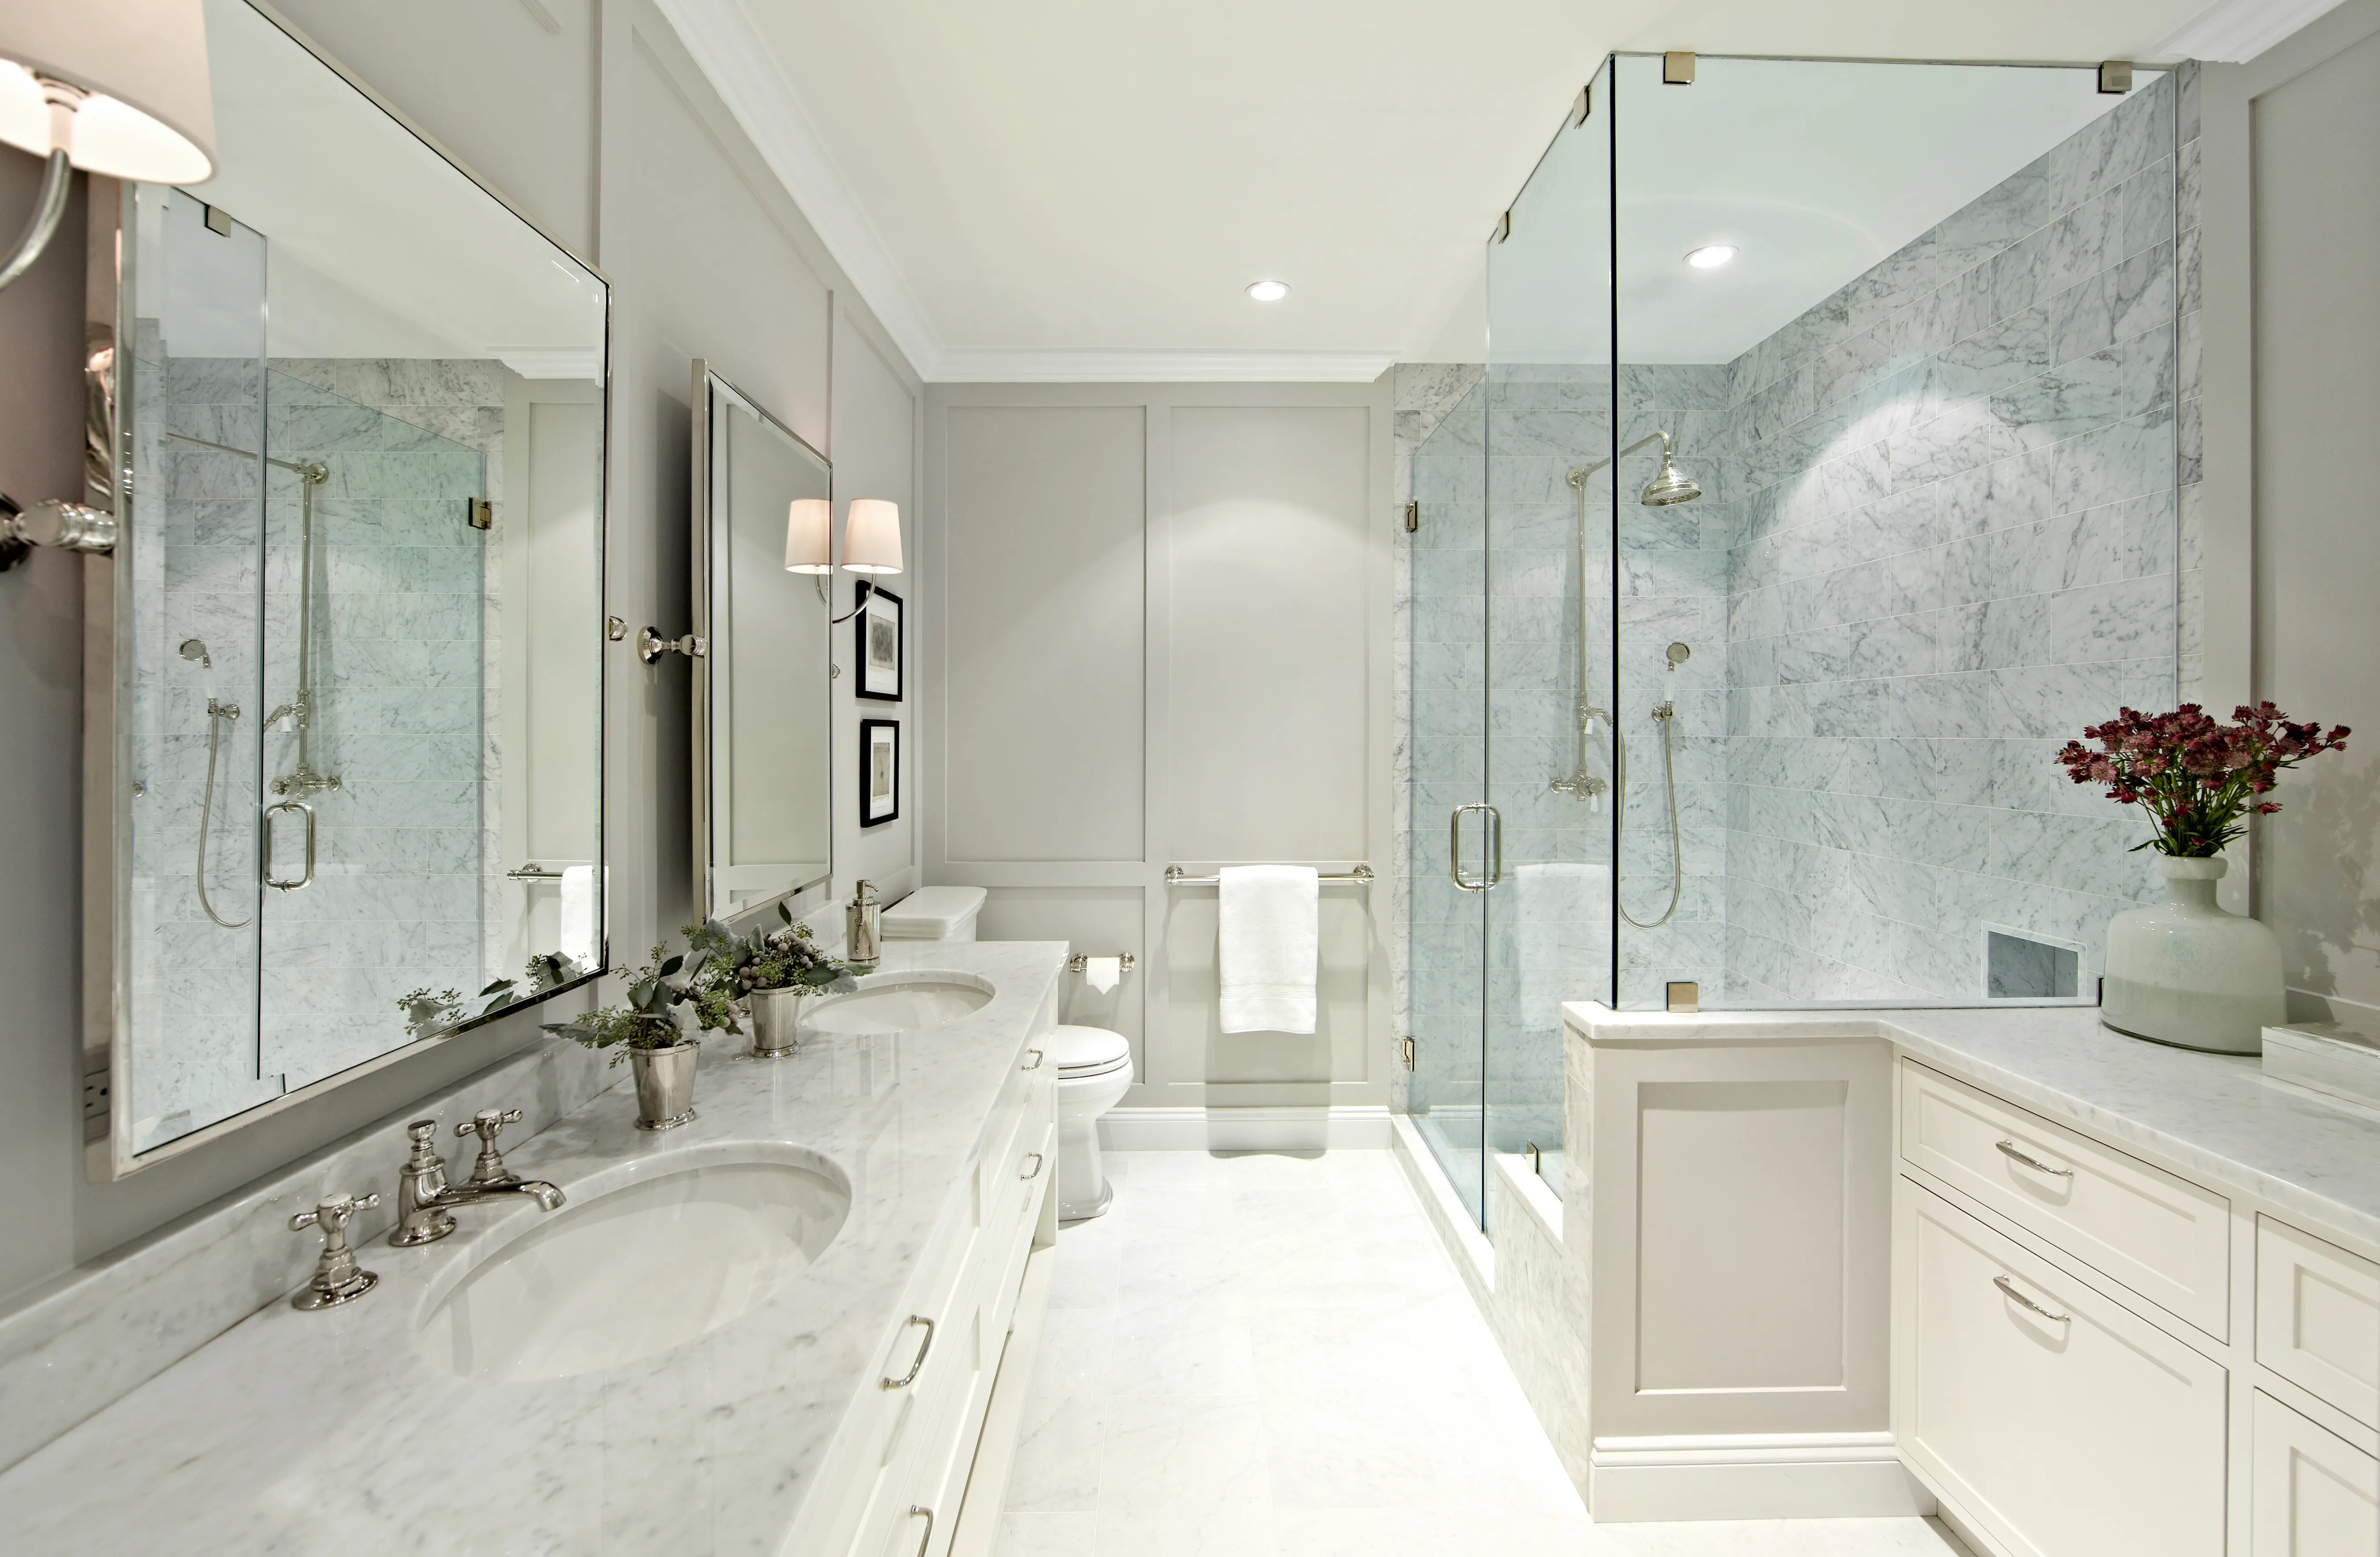 5 Design Tips from a Stunning Before-and-After Bathroom ... on Bathroom Models  id=52932